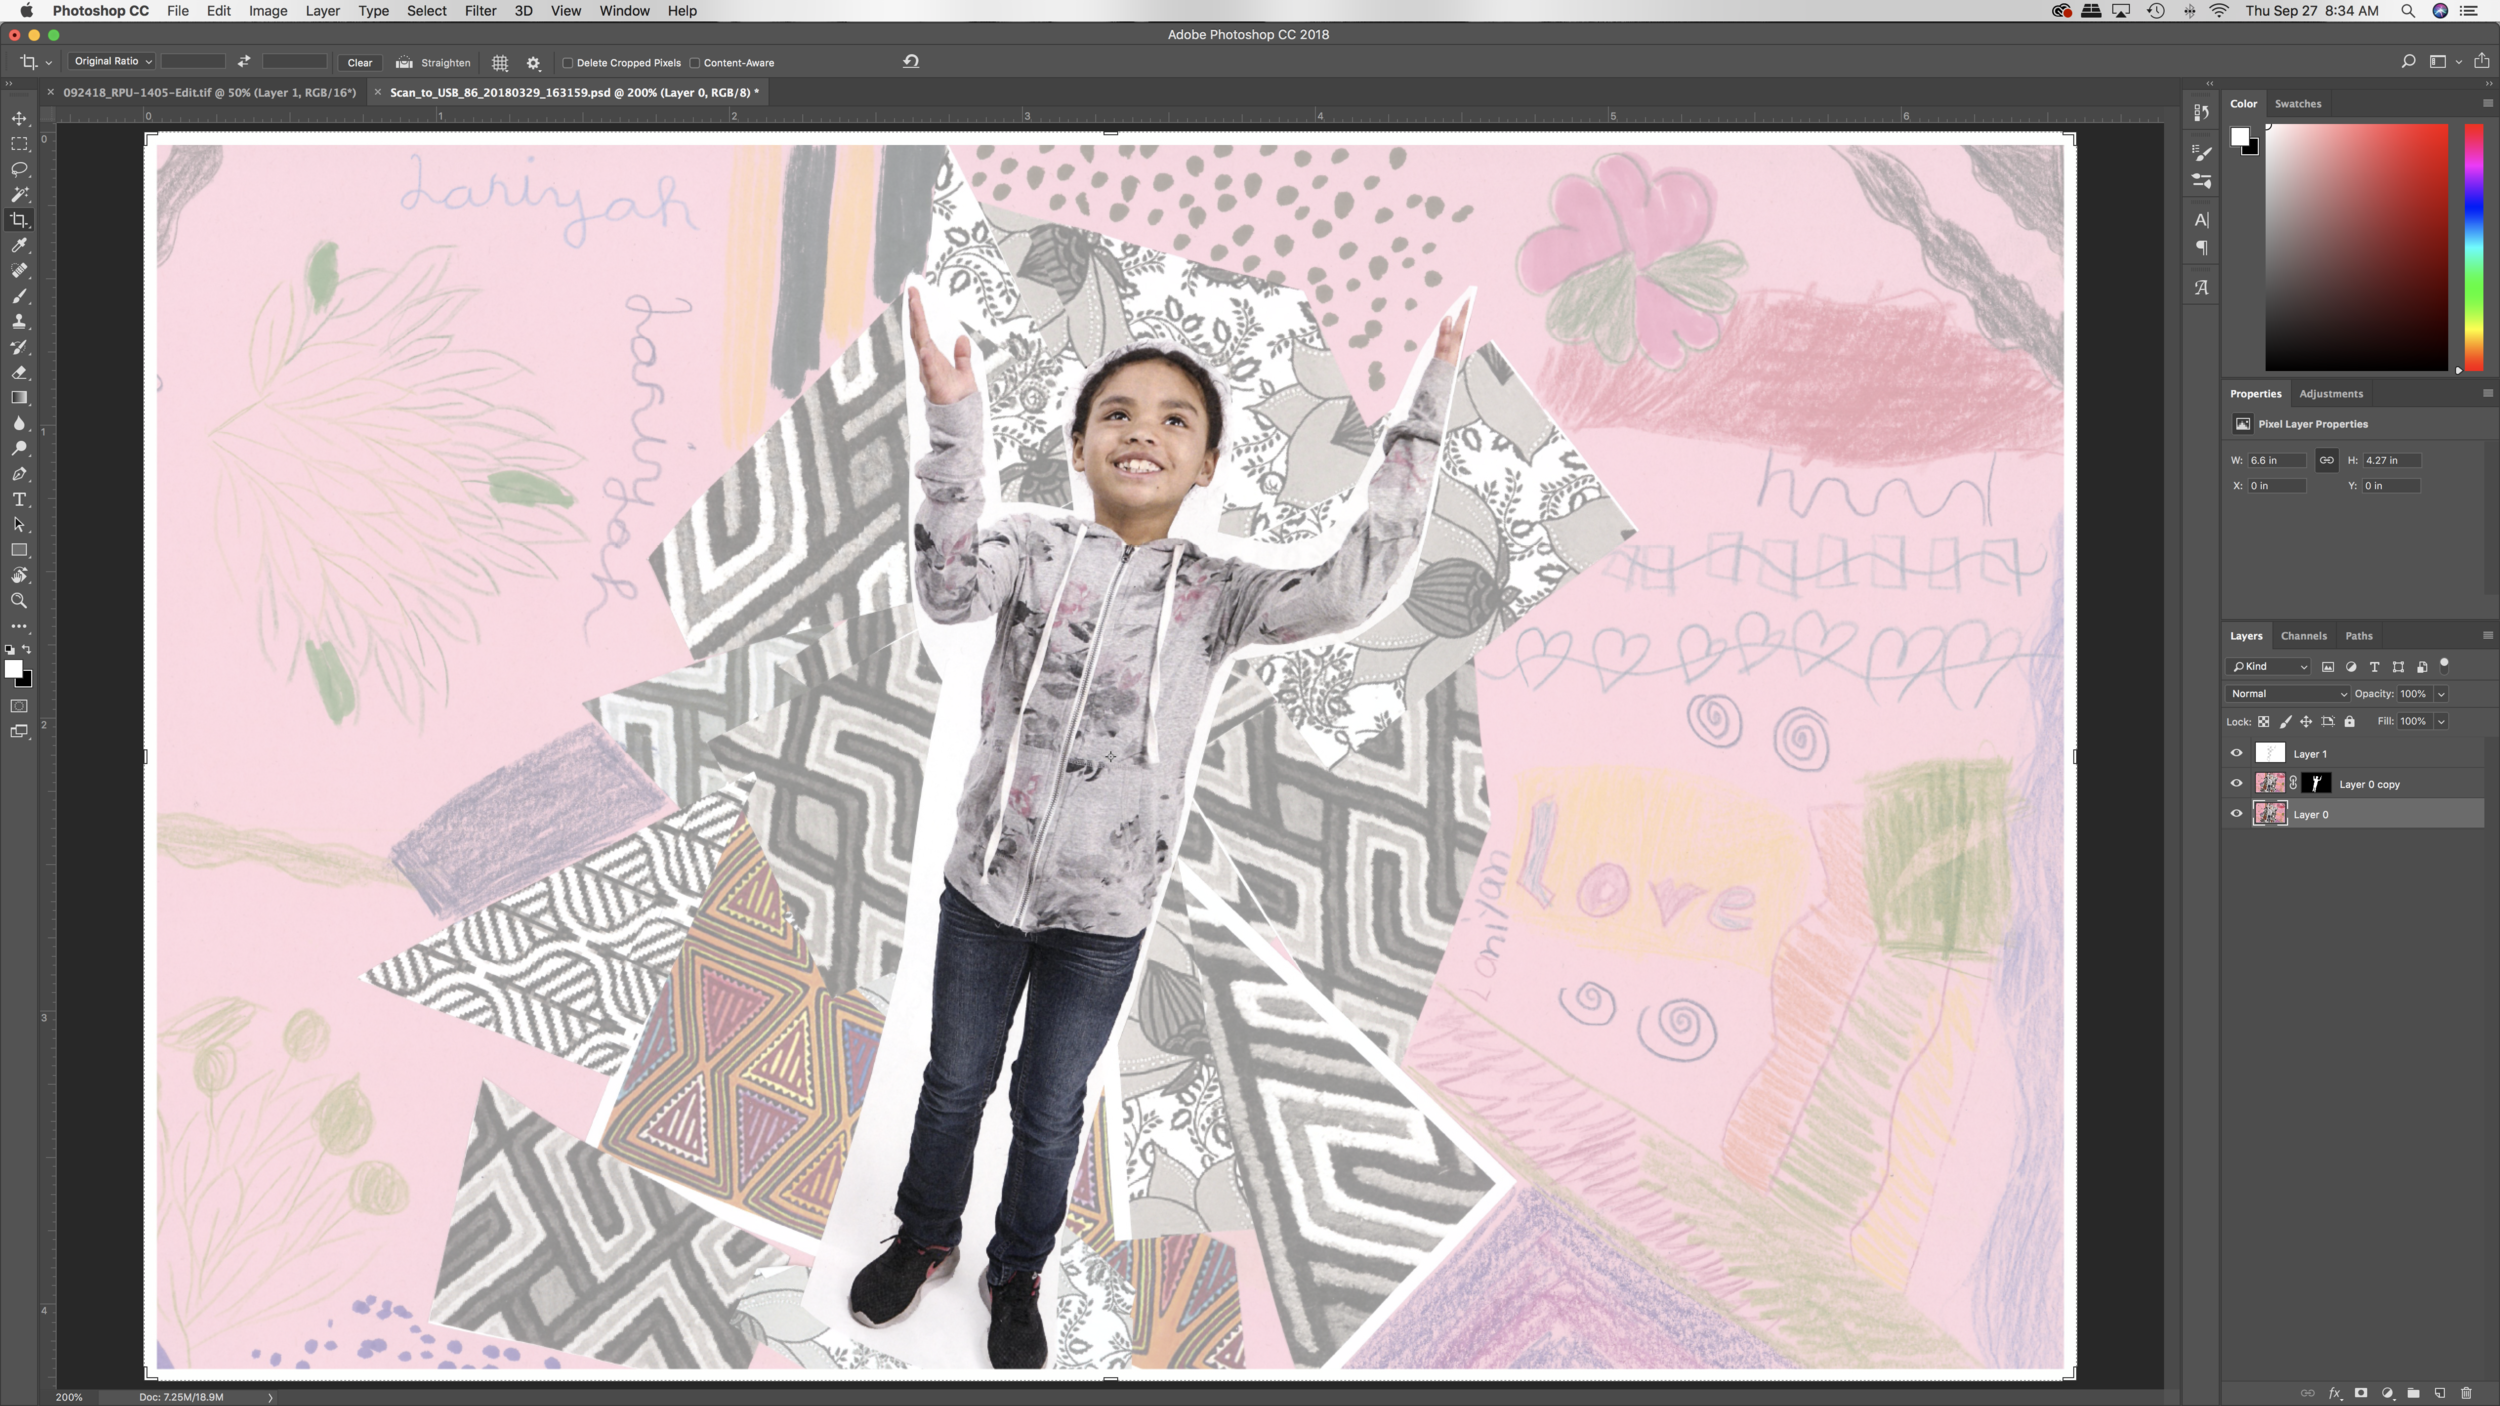 Image 7:  Mini-mural layers within photoshop with image masks.